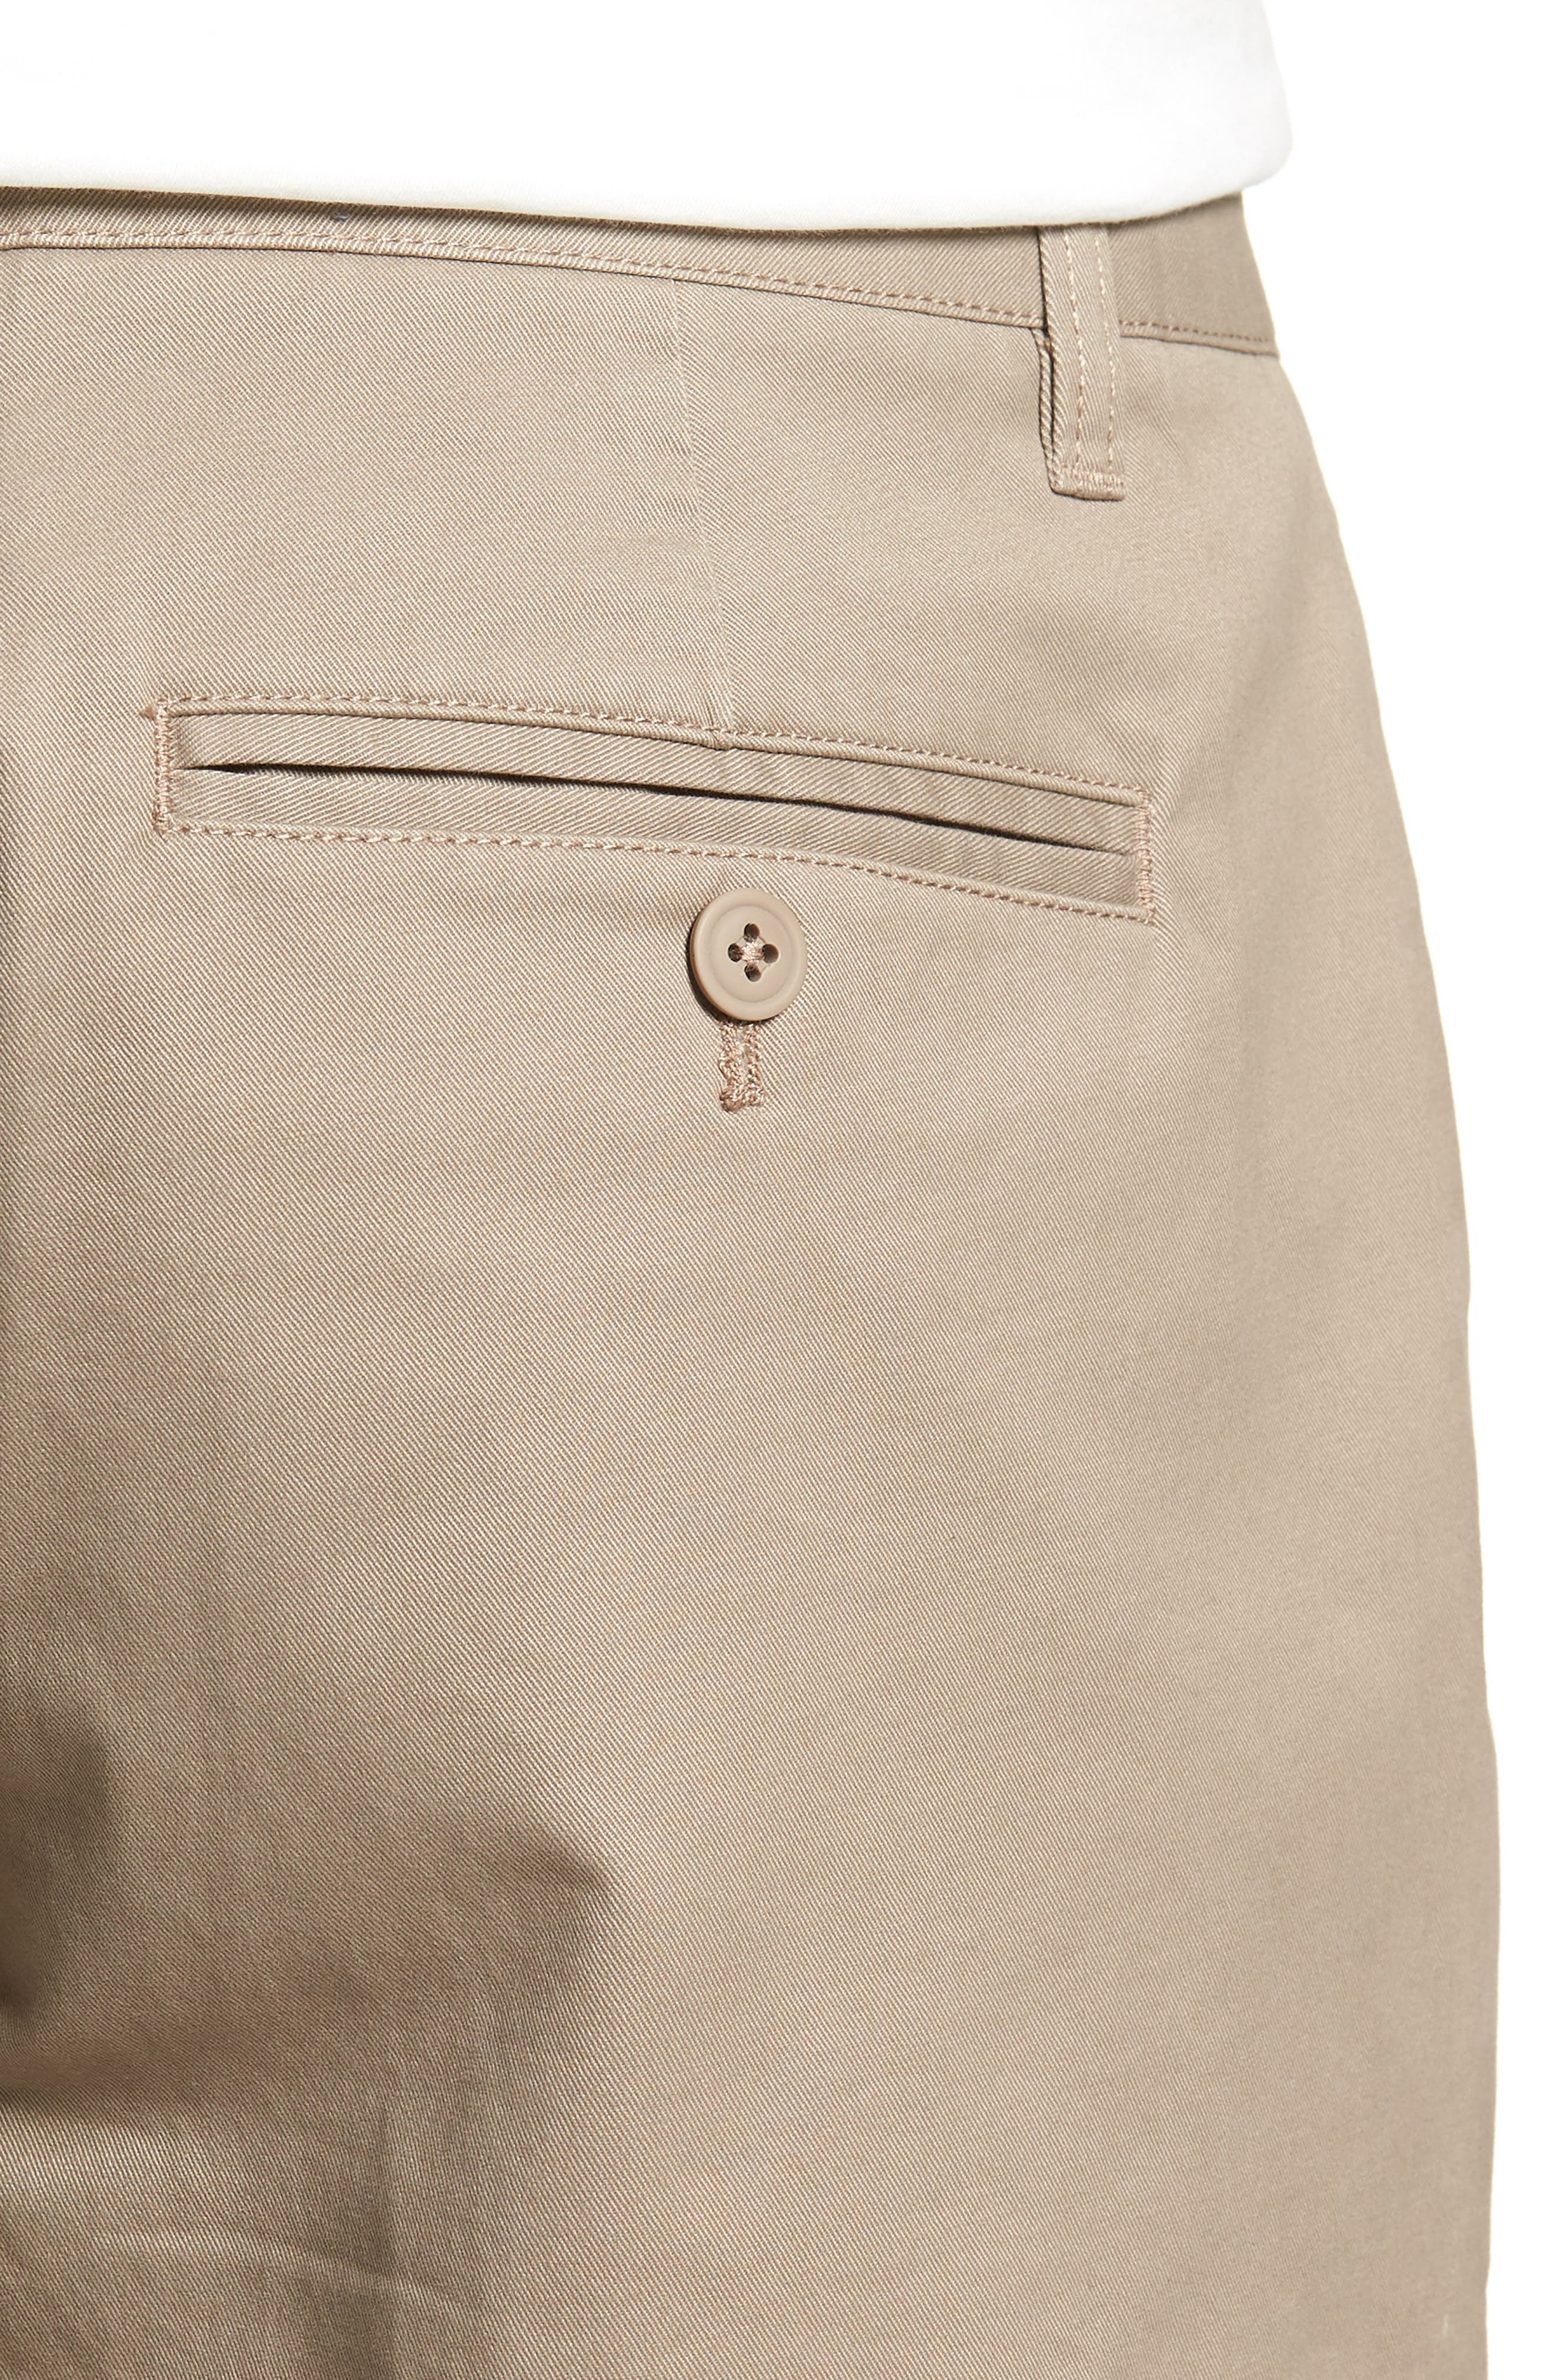 Stretch Washed Chino 5-Inch Shorts,                             Alternate thumbnail 86, color,